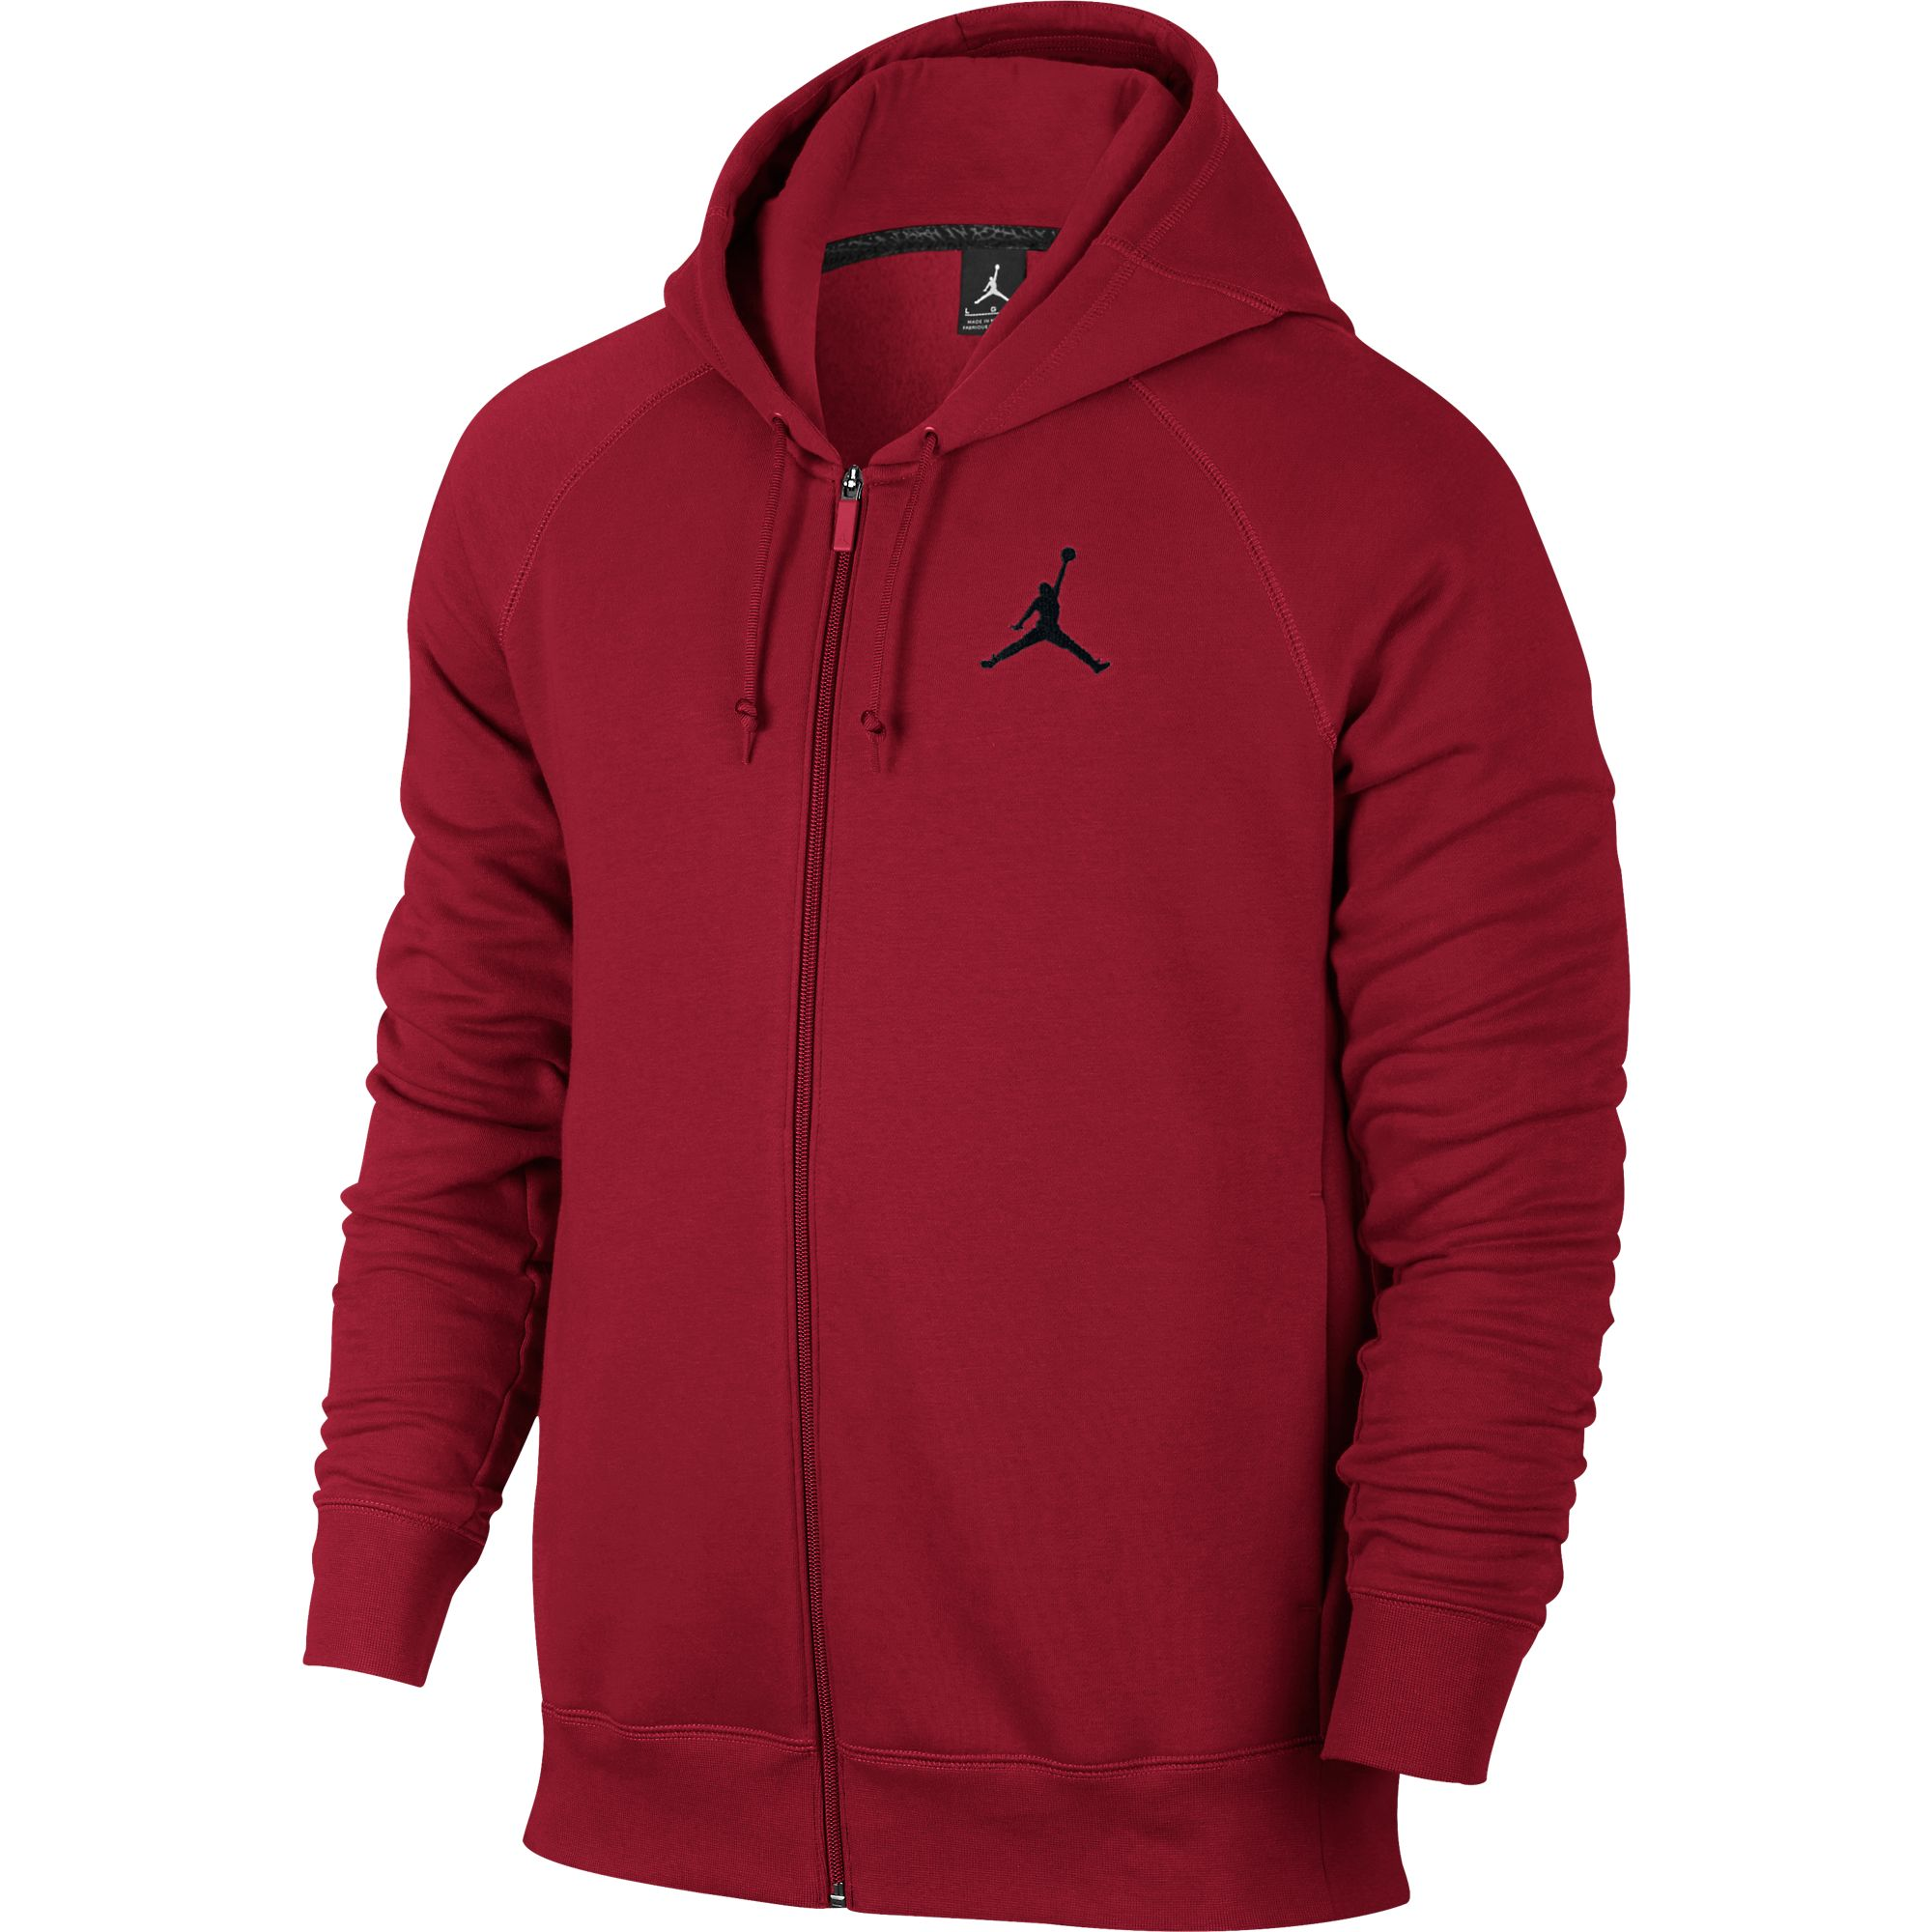 d6843b2b Michael Jordan Jordan Flight Men's Basketball Full Zip Hoodie Red/Black  823064-687 (